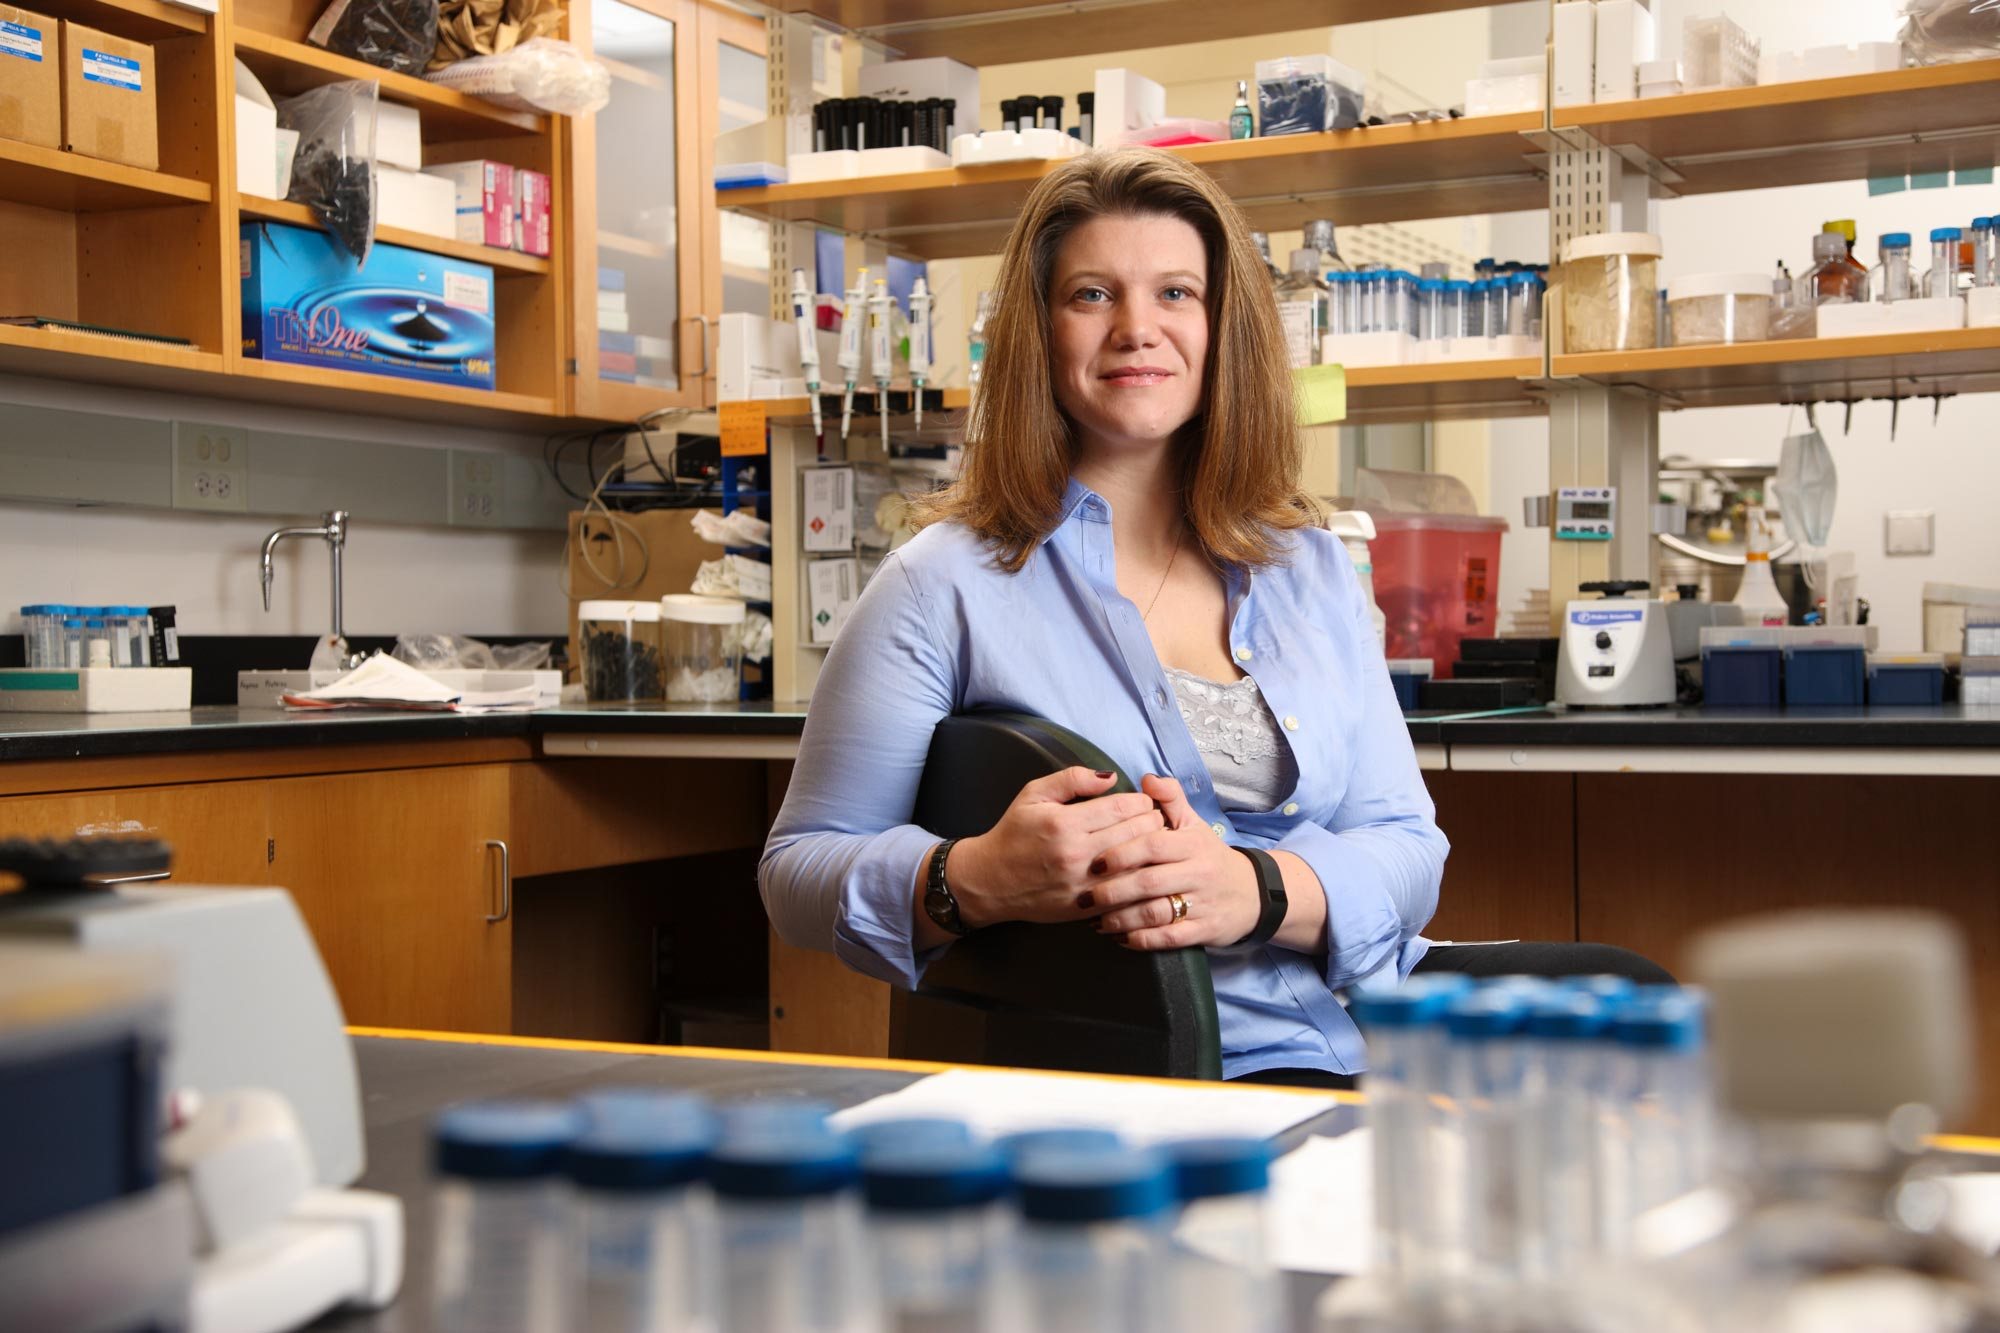 UVA biomedical engineering professor Kimberly Kelly founded ZielBio to bring new cancer treatments to market.